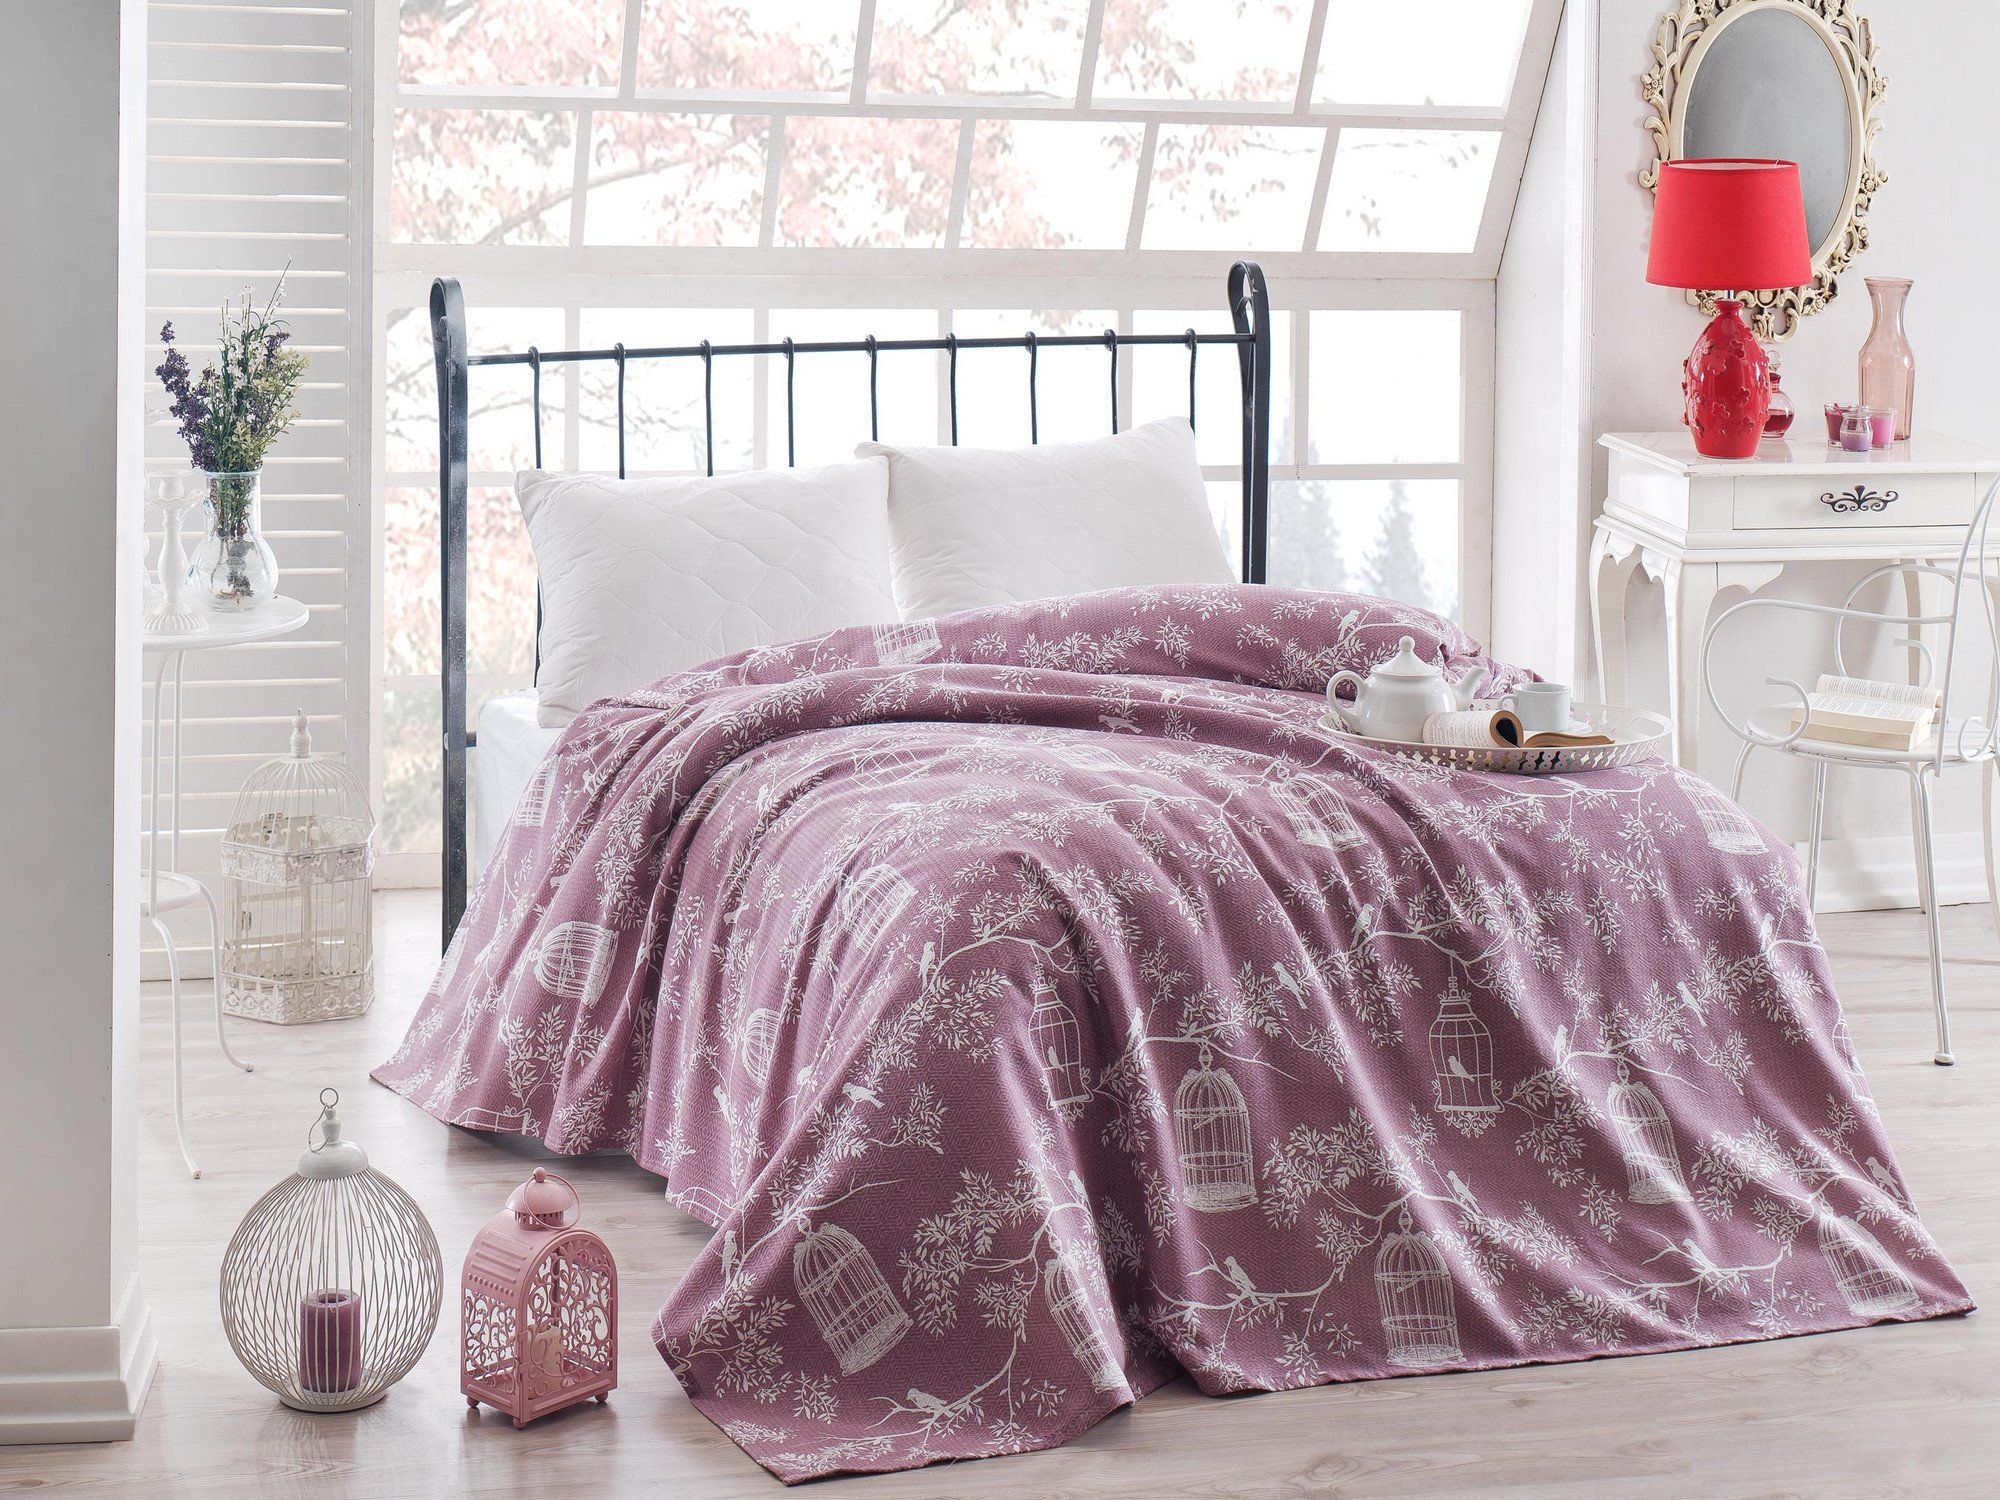 LaModaHome Luxury Soft Colored Bedroom Bedding 100% Cotton Single Coverlet (Pique) Thin Coverlet Summer/Bird Cage Animal Tree Plant Flower Nature Purple Background/Single